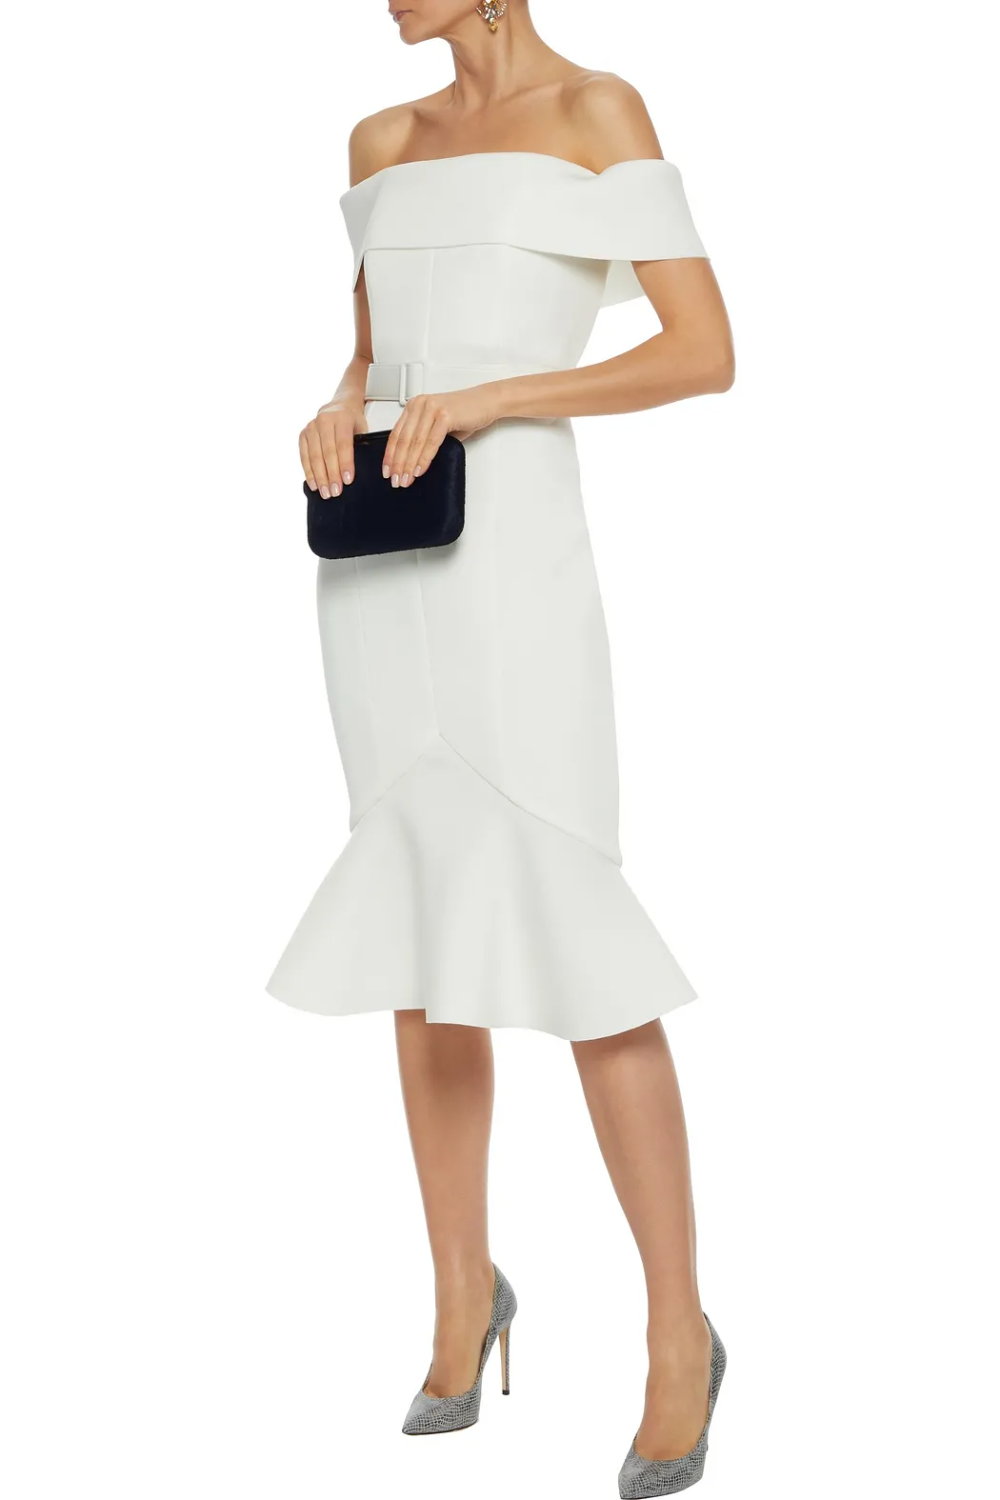 White Off The Shoulder Belted Scuba Dress Sale Up To 70 Off The Outnet Badgley Mischka In 2021 Scuba Dress Knee Length Dress Dresses [ 1500 x 1000 Pixel ]